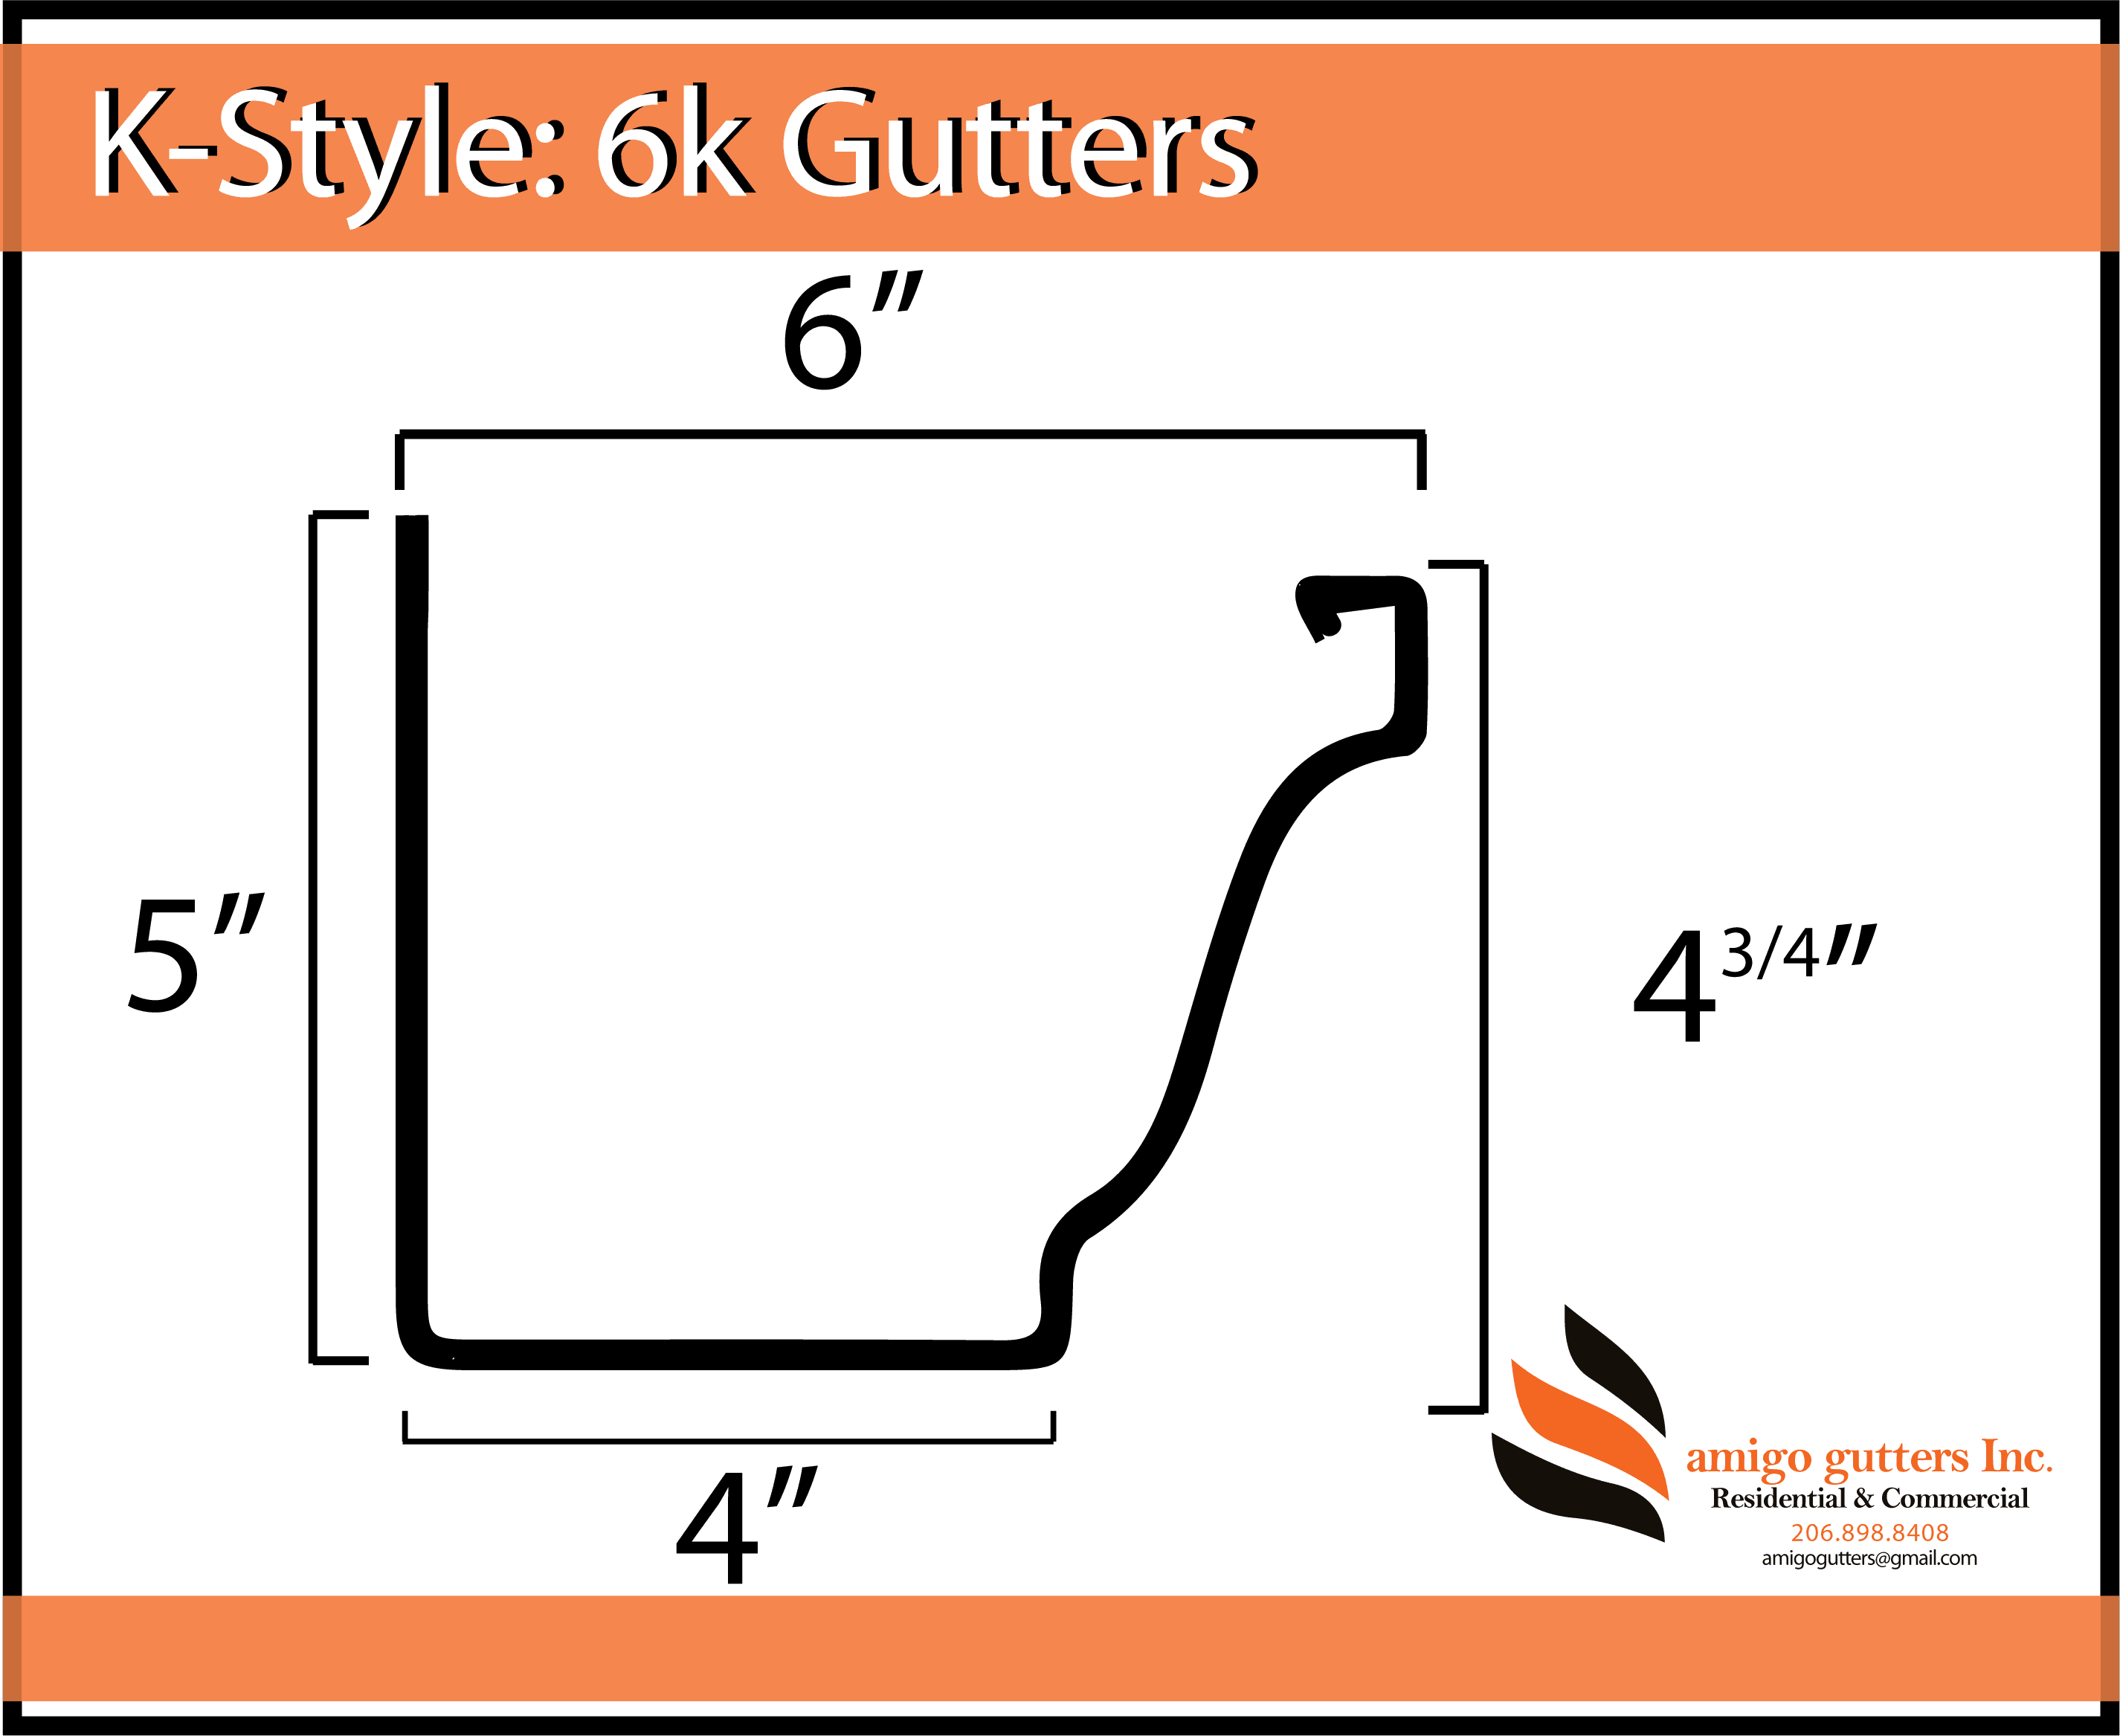 Pick Your Gutter Profile Aluminum Copper Zinc Amigo Gutters Find over 100+ of the best free profile images. gutter profile aluminum copper zinc